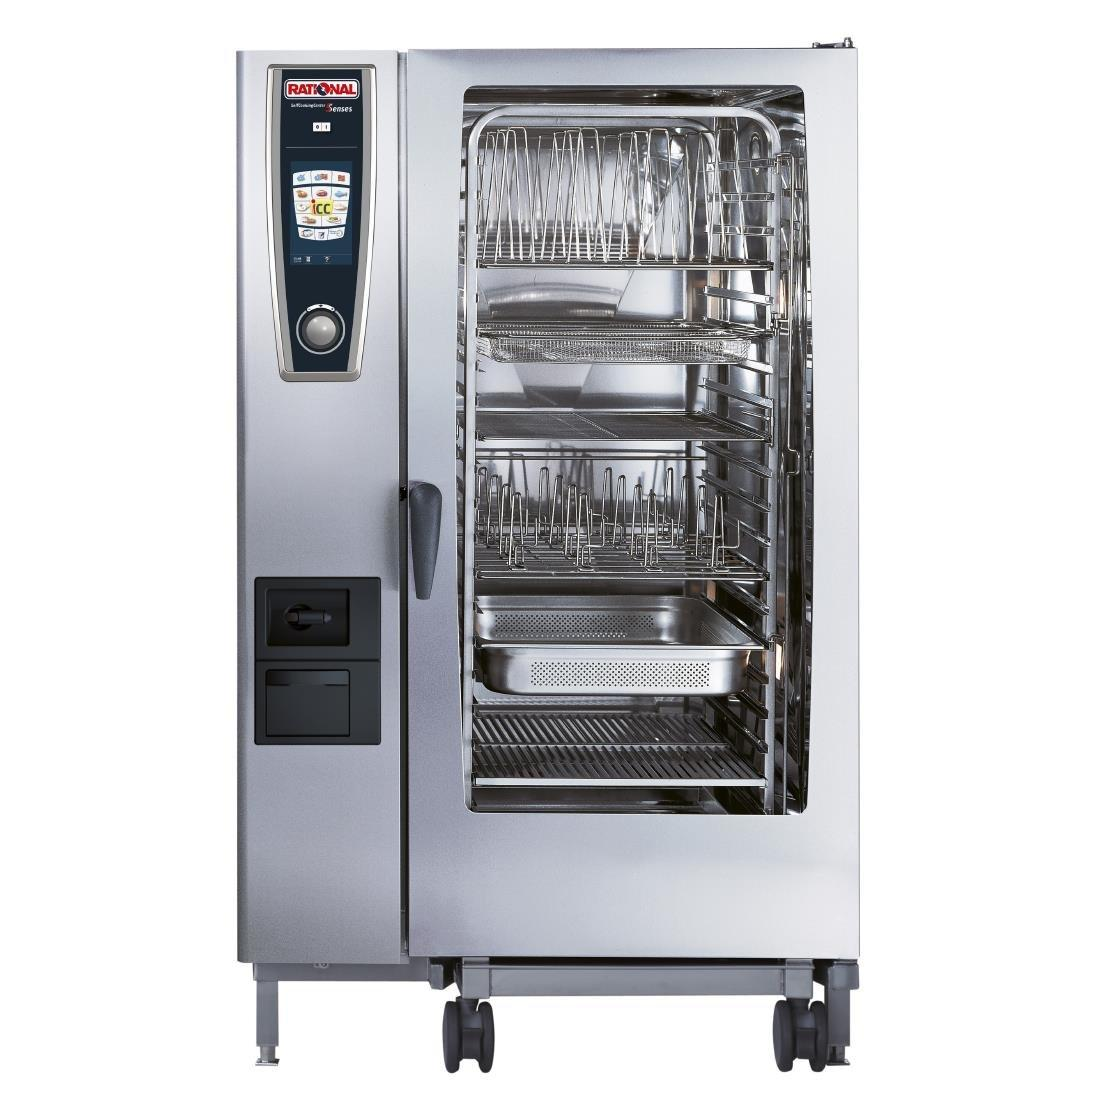 GJ078 - Rational Self Cooking Centre White Efficiency 202 Electric (Direct)